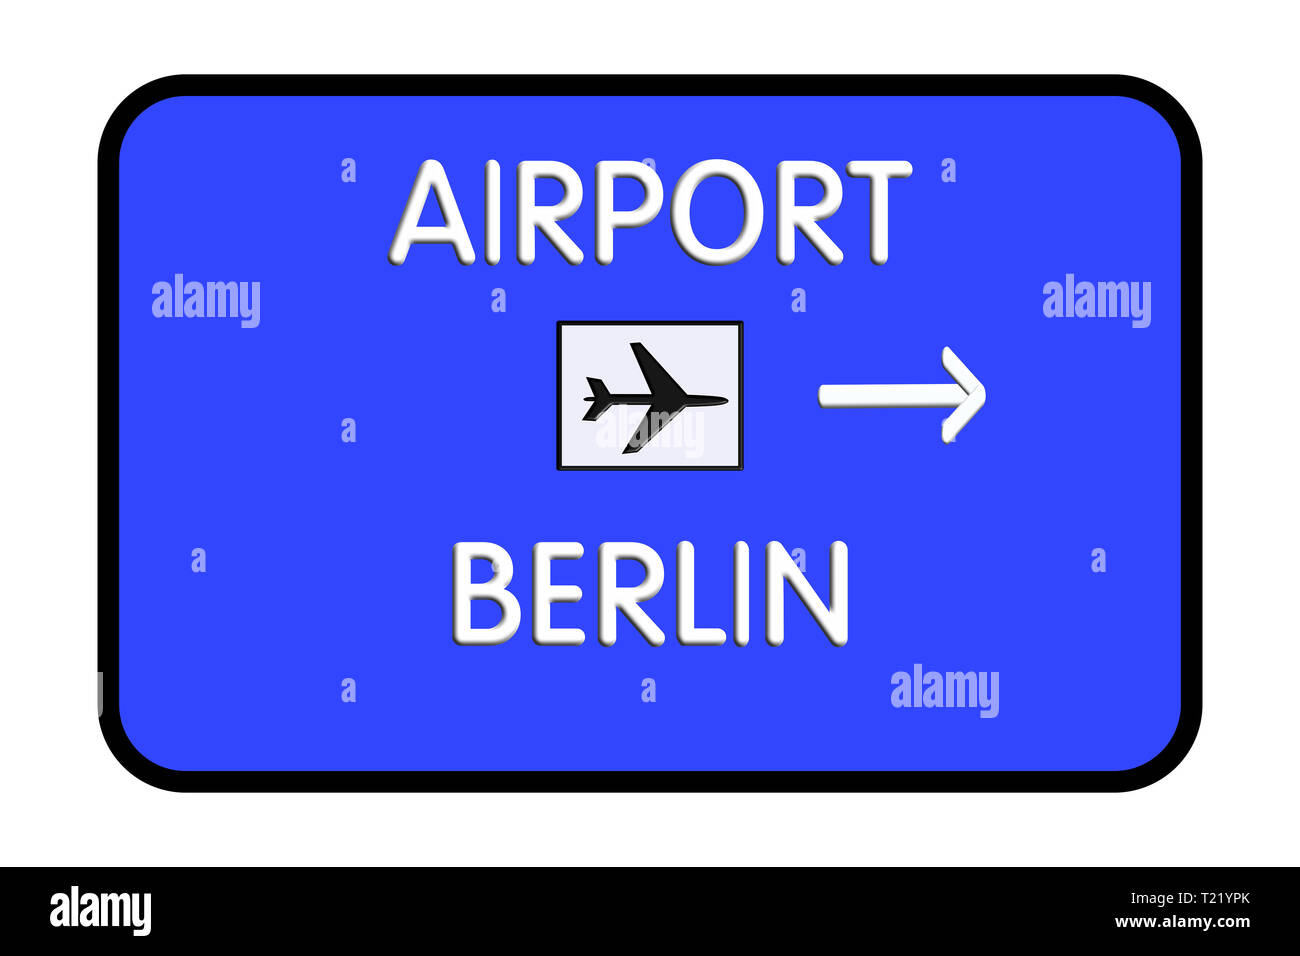 Berlin Germany Airport Highway Road Sign 3D Illustration - Stock Image